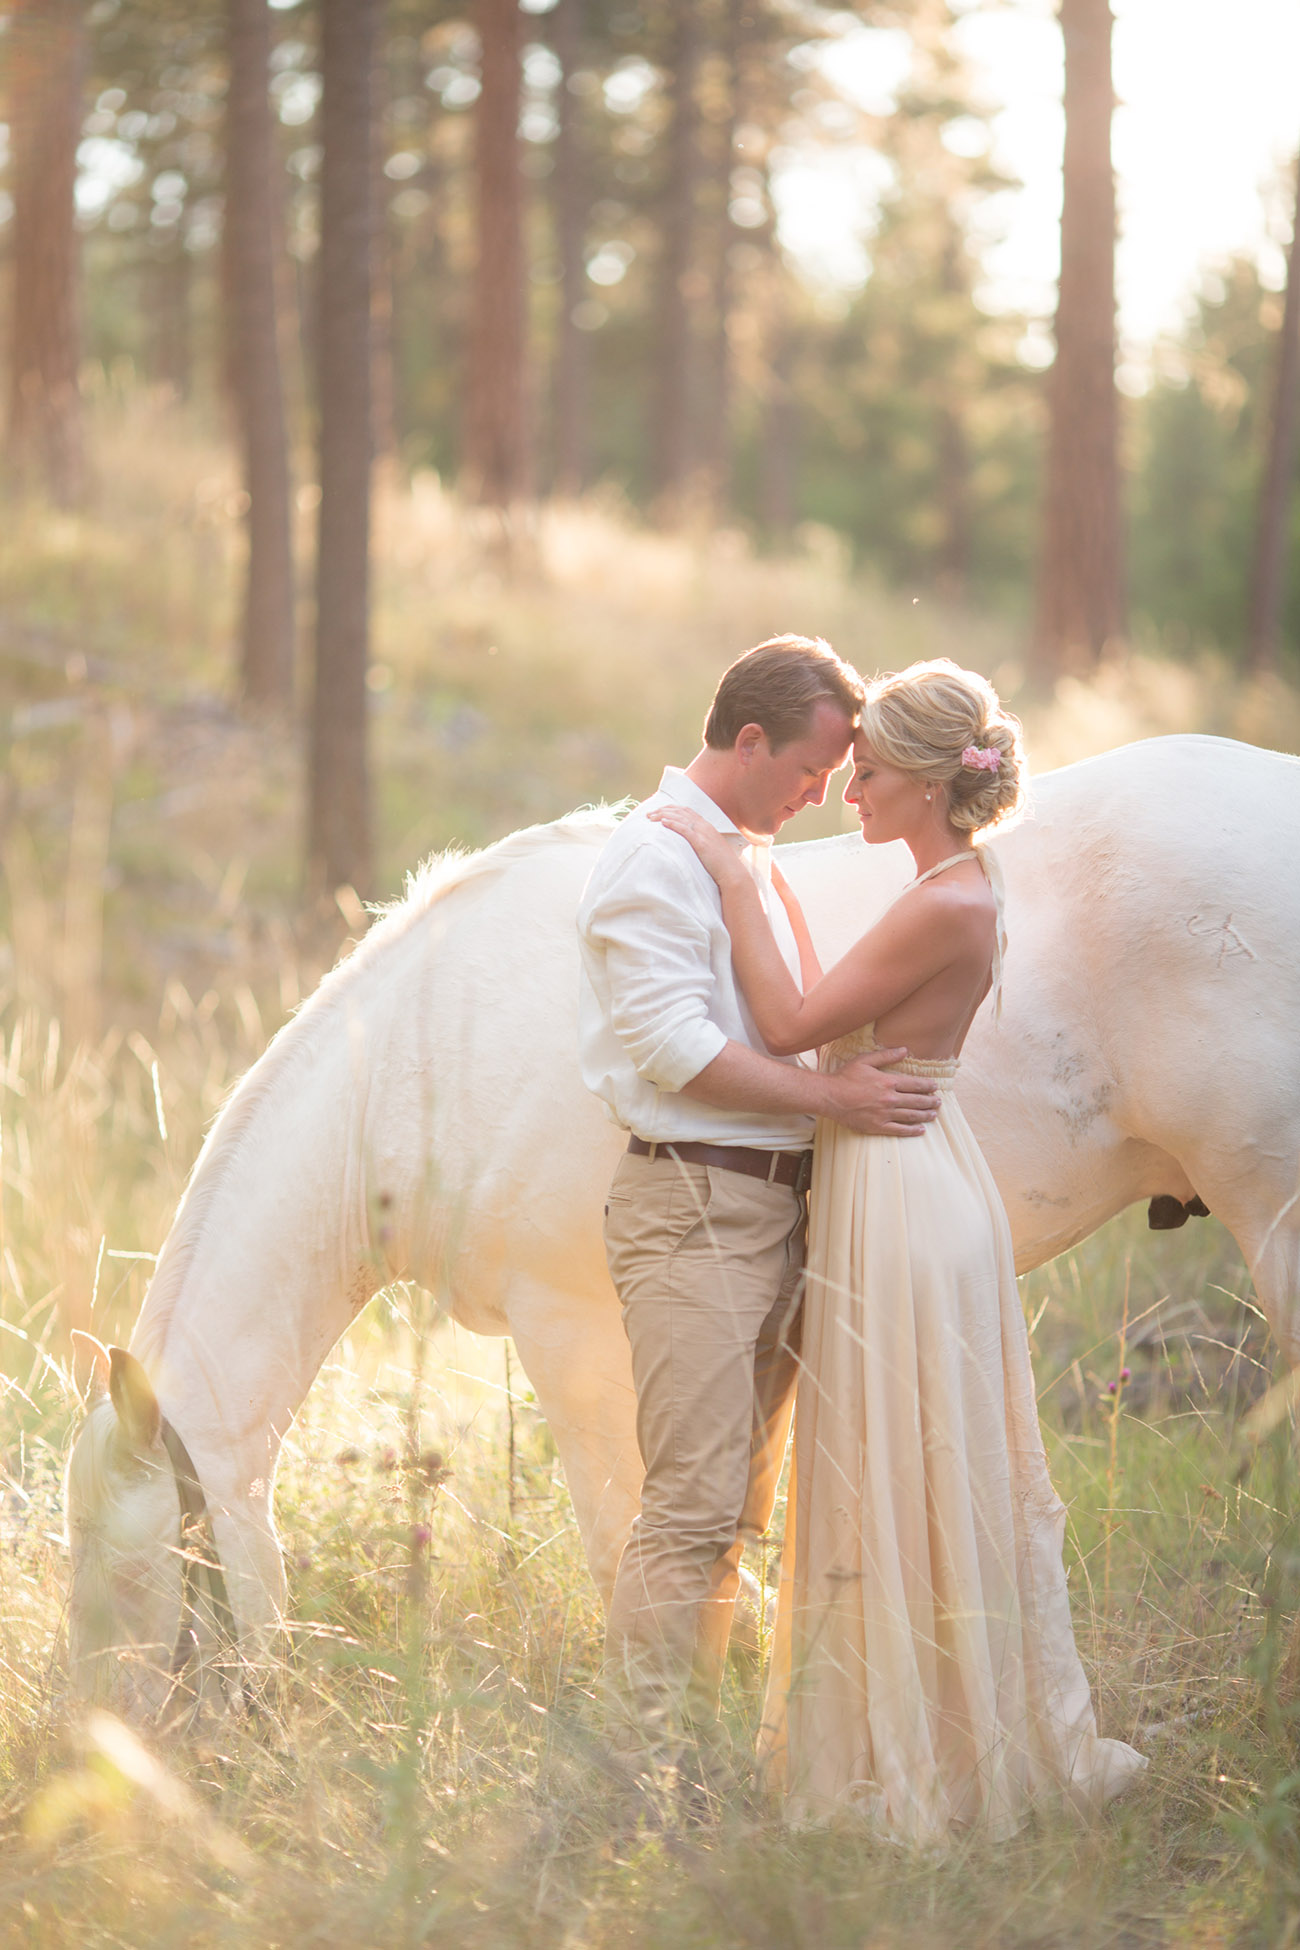 Destination Weddings at The Resort at Paws Up